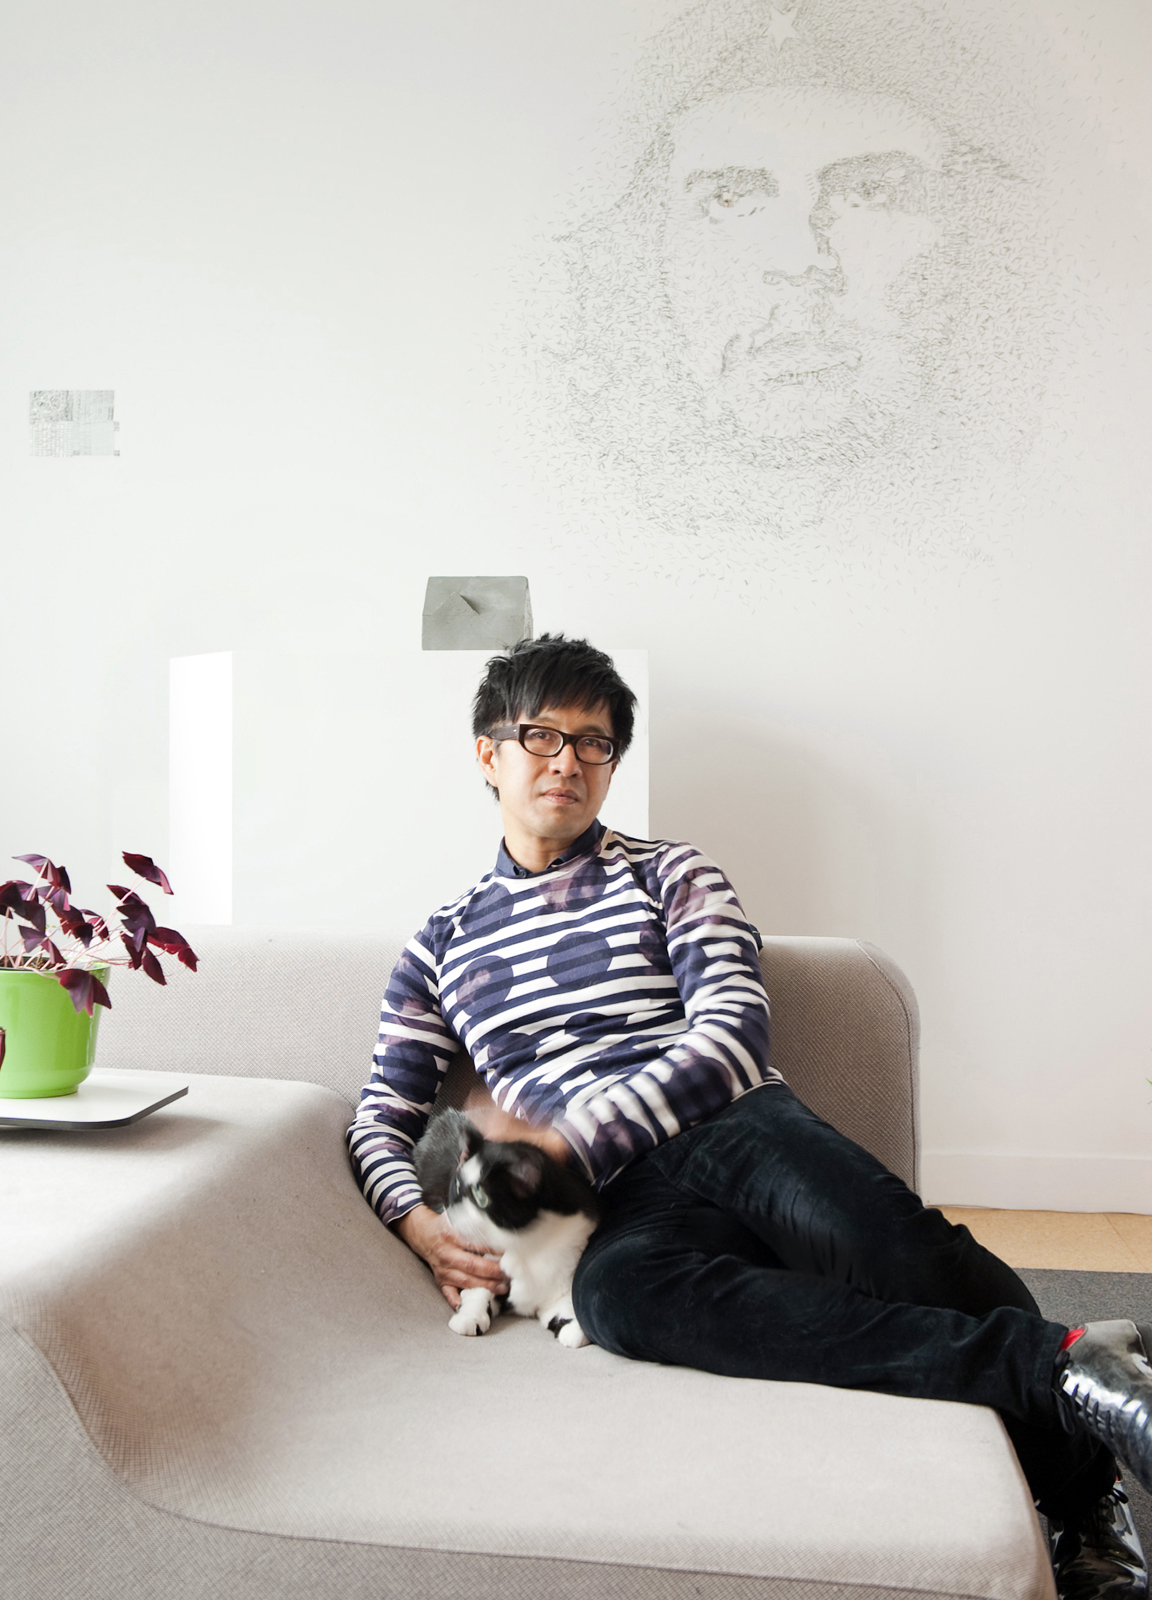 A wall sketch of Che Guevara is a focal point in architectural theorist and installation artist An Te Liu's living room.